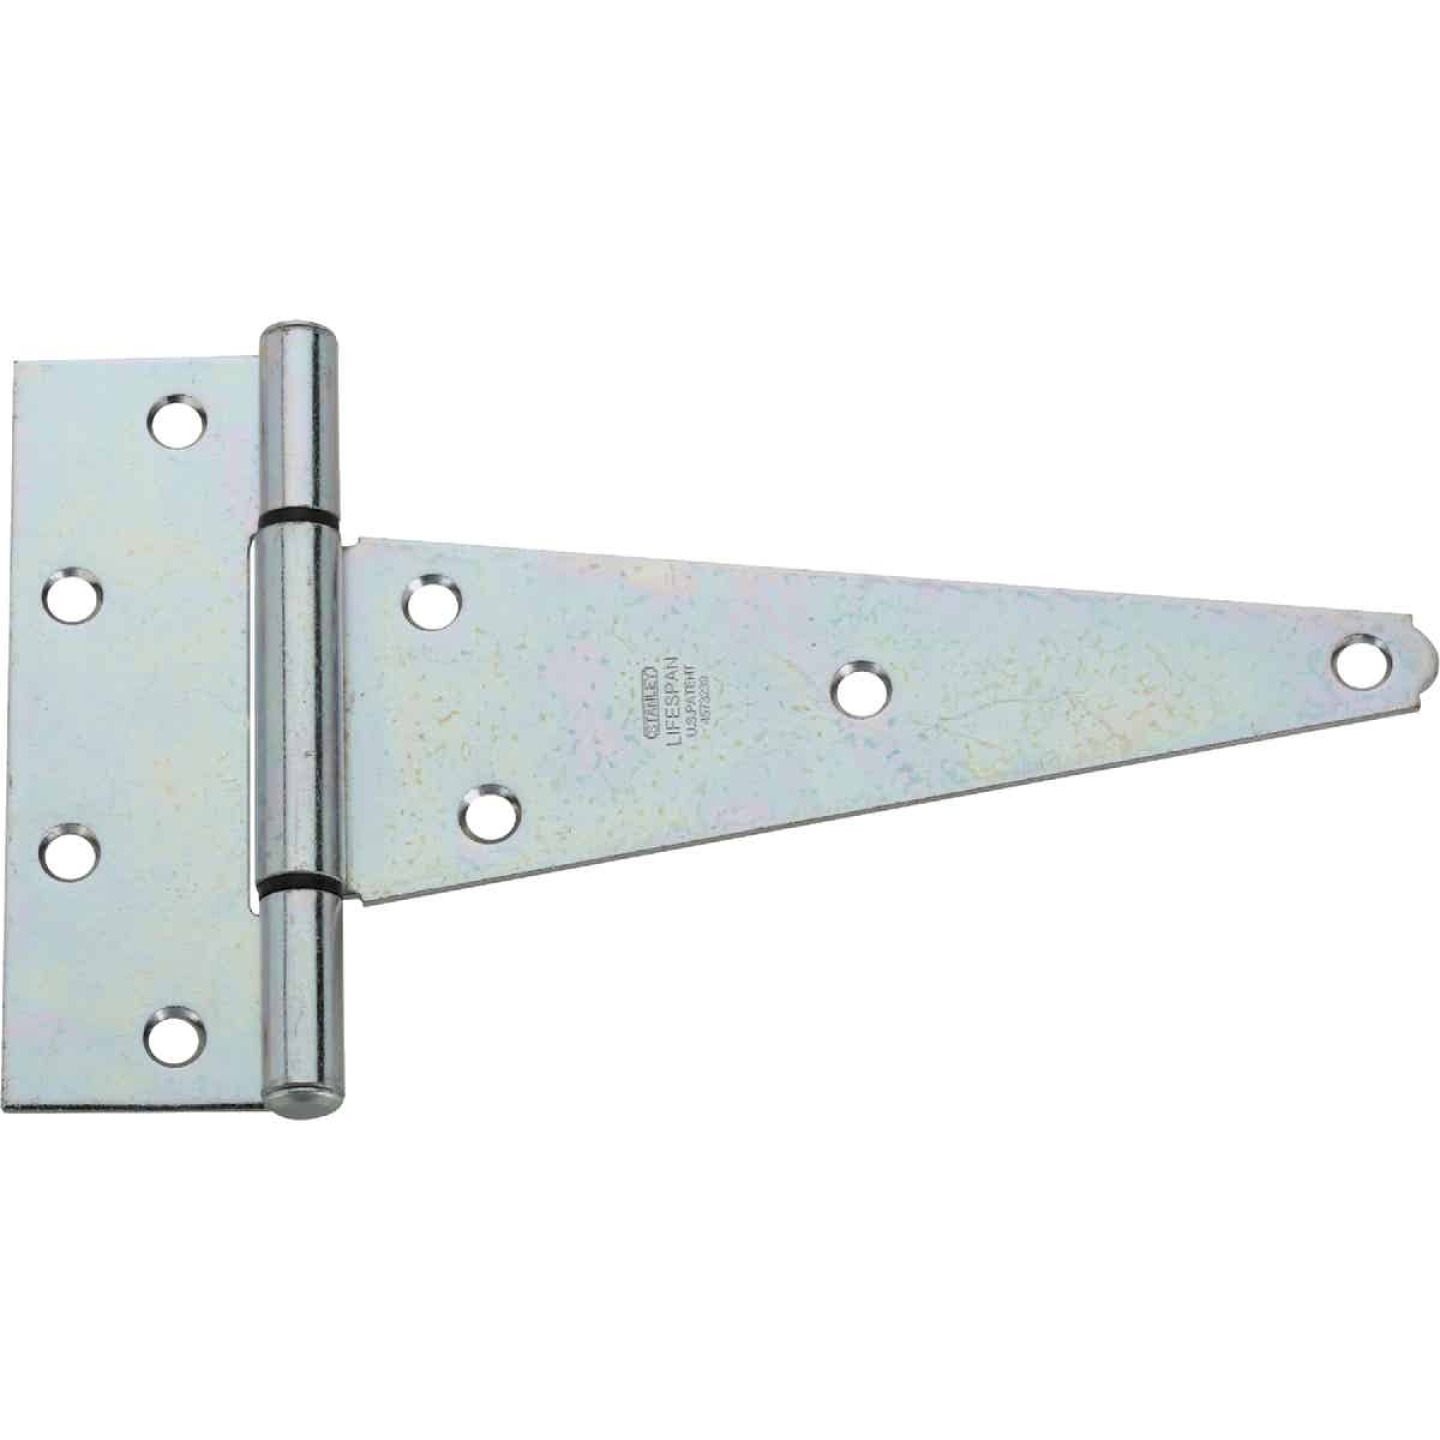 National 8 In. Zinc-Plated Steel Heavy-Duty Tee Hinge (2-Pack) Image 1